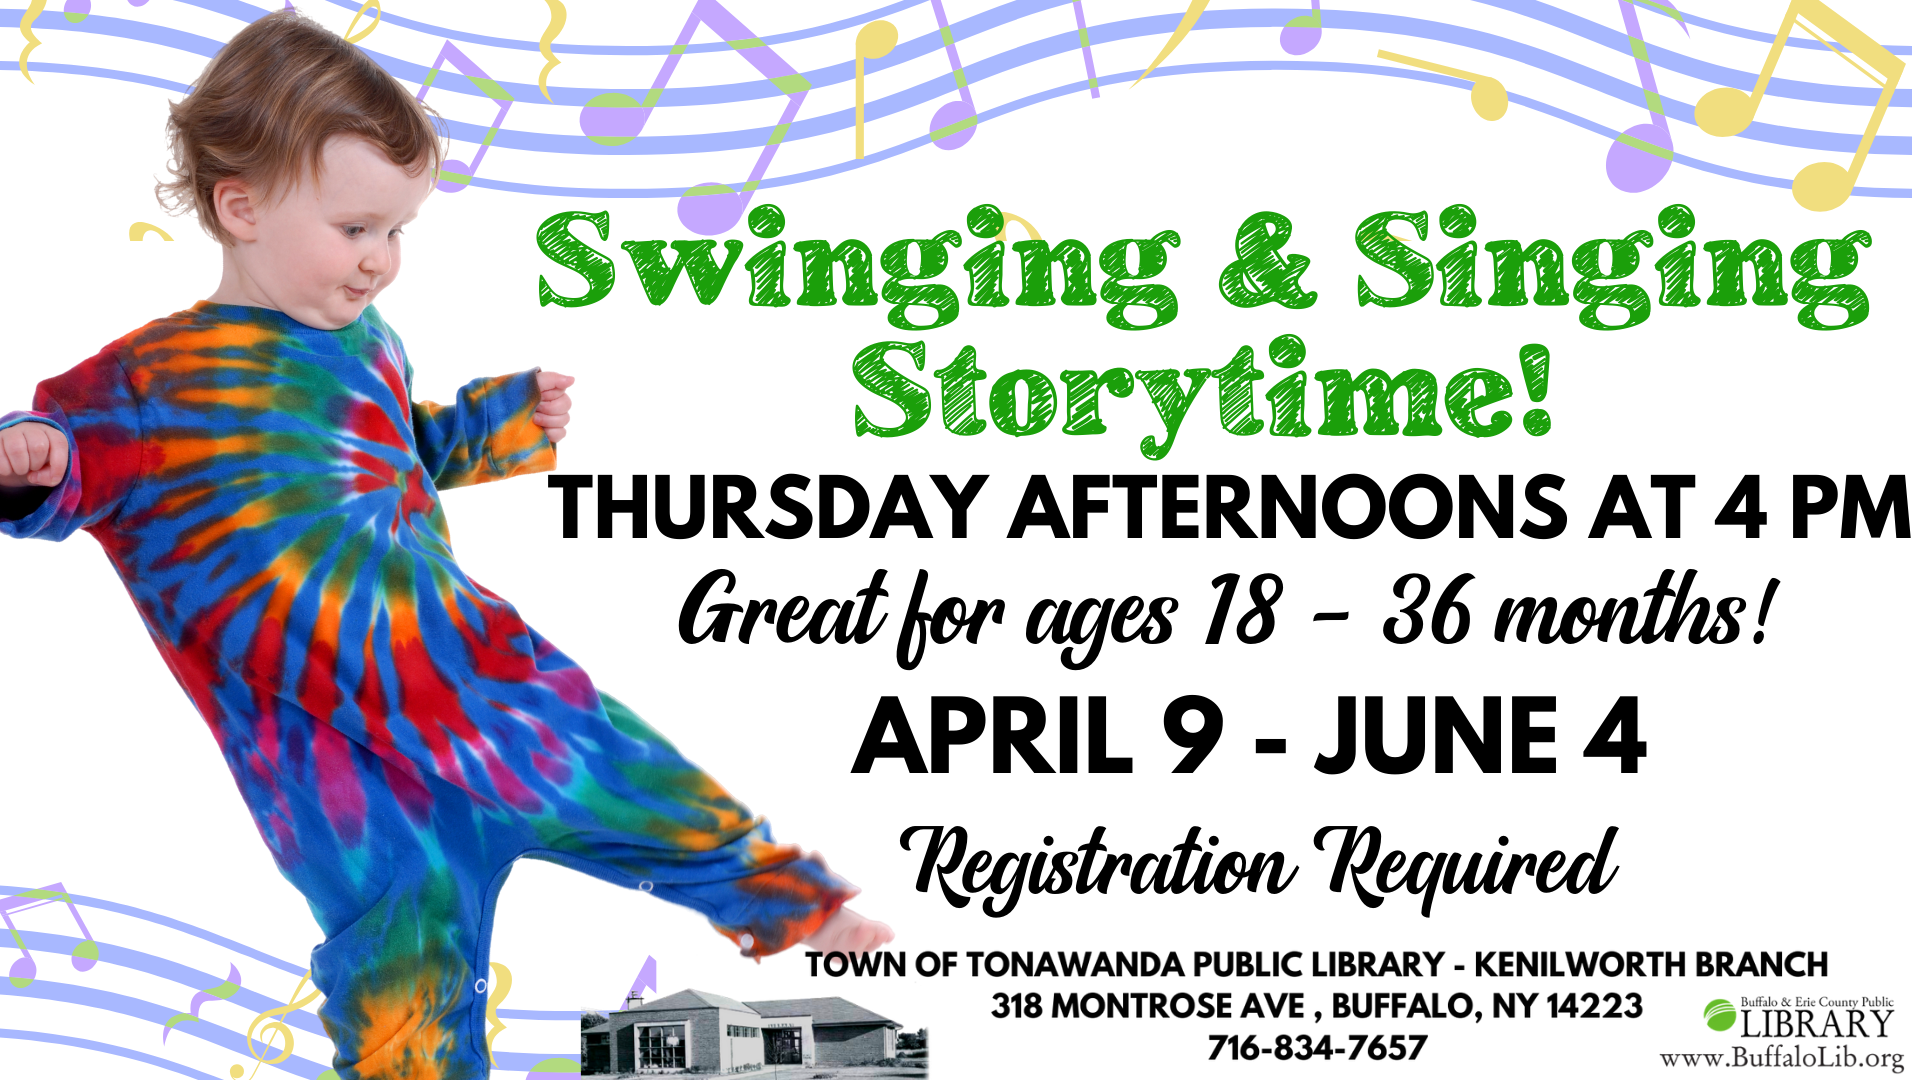 Swinging & Singing Story time for ages 18-36 months